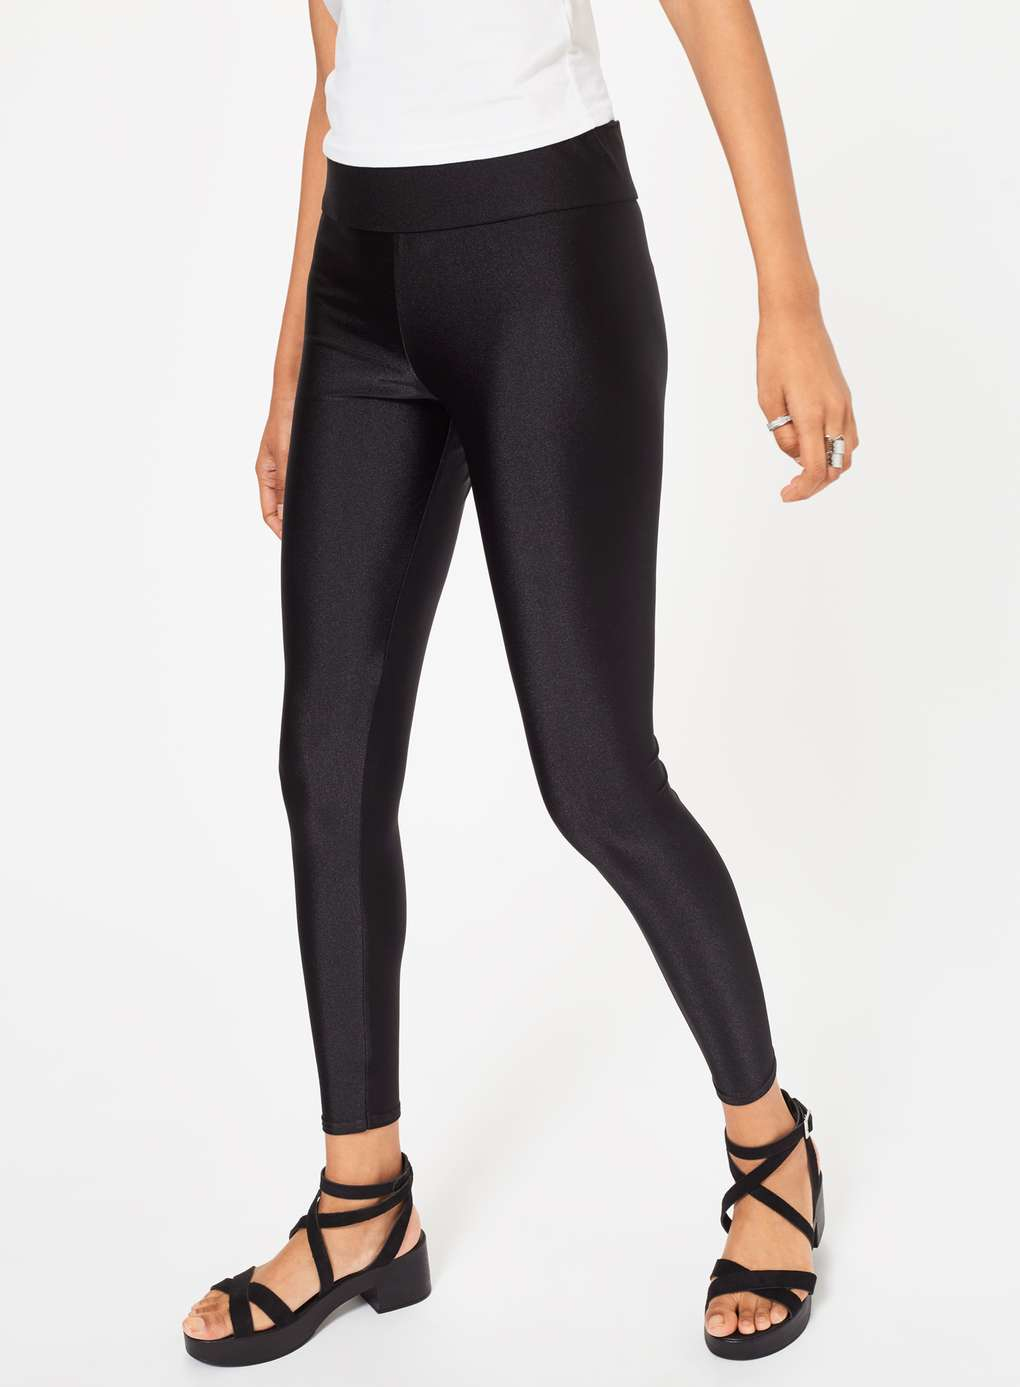 Shop for high waisted leggings online at Target. Free shipping on purchases over $35 and save 5% every day with your Target REDcard.